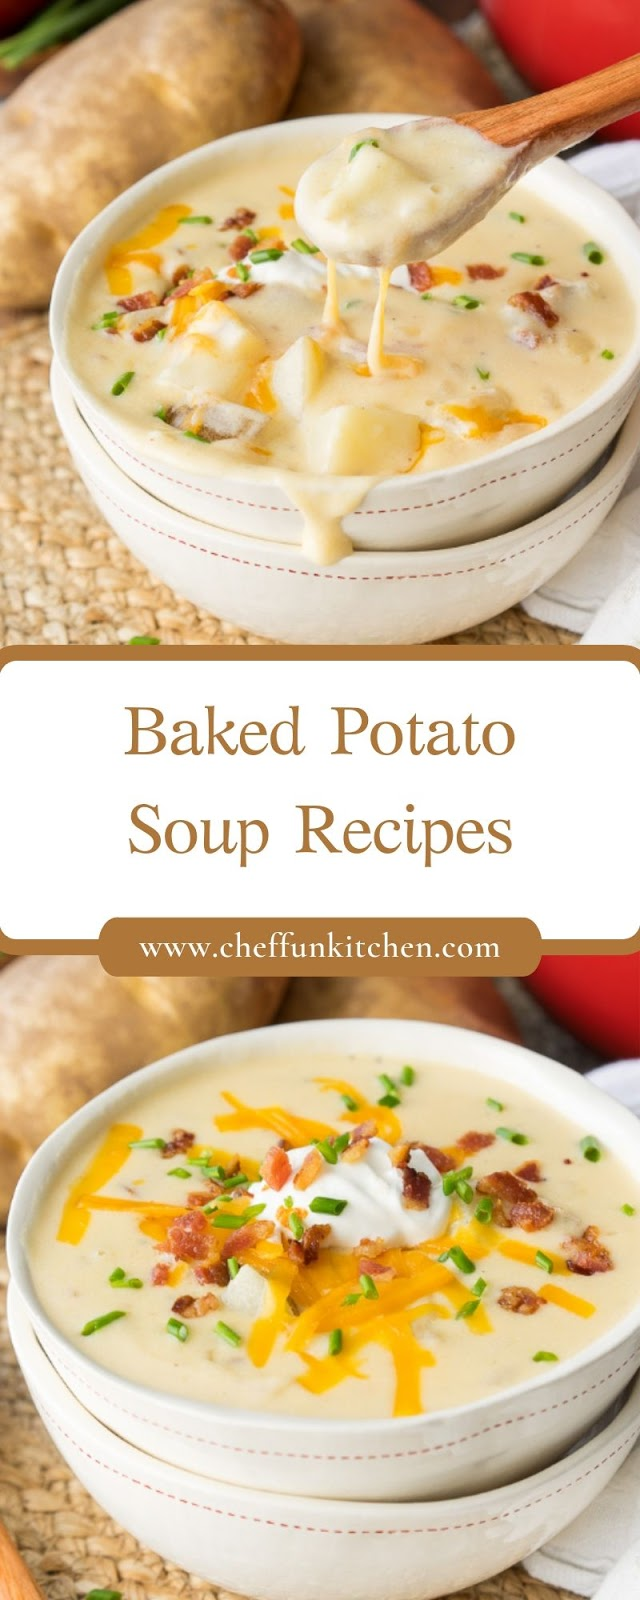 Baked Potato Soup Recipes